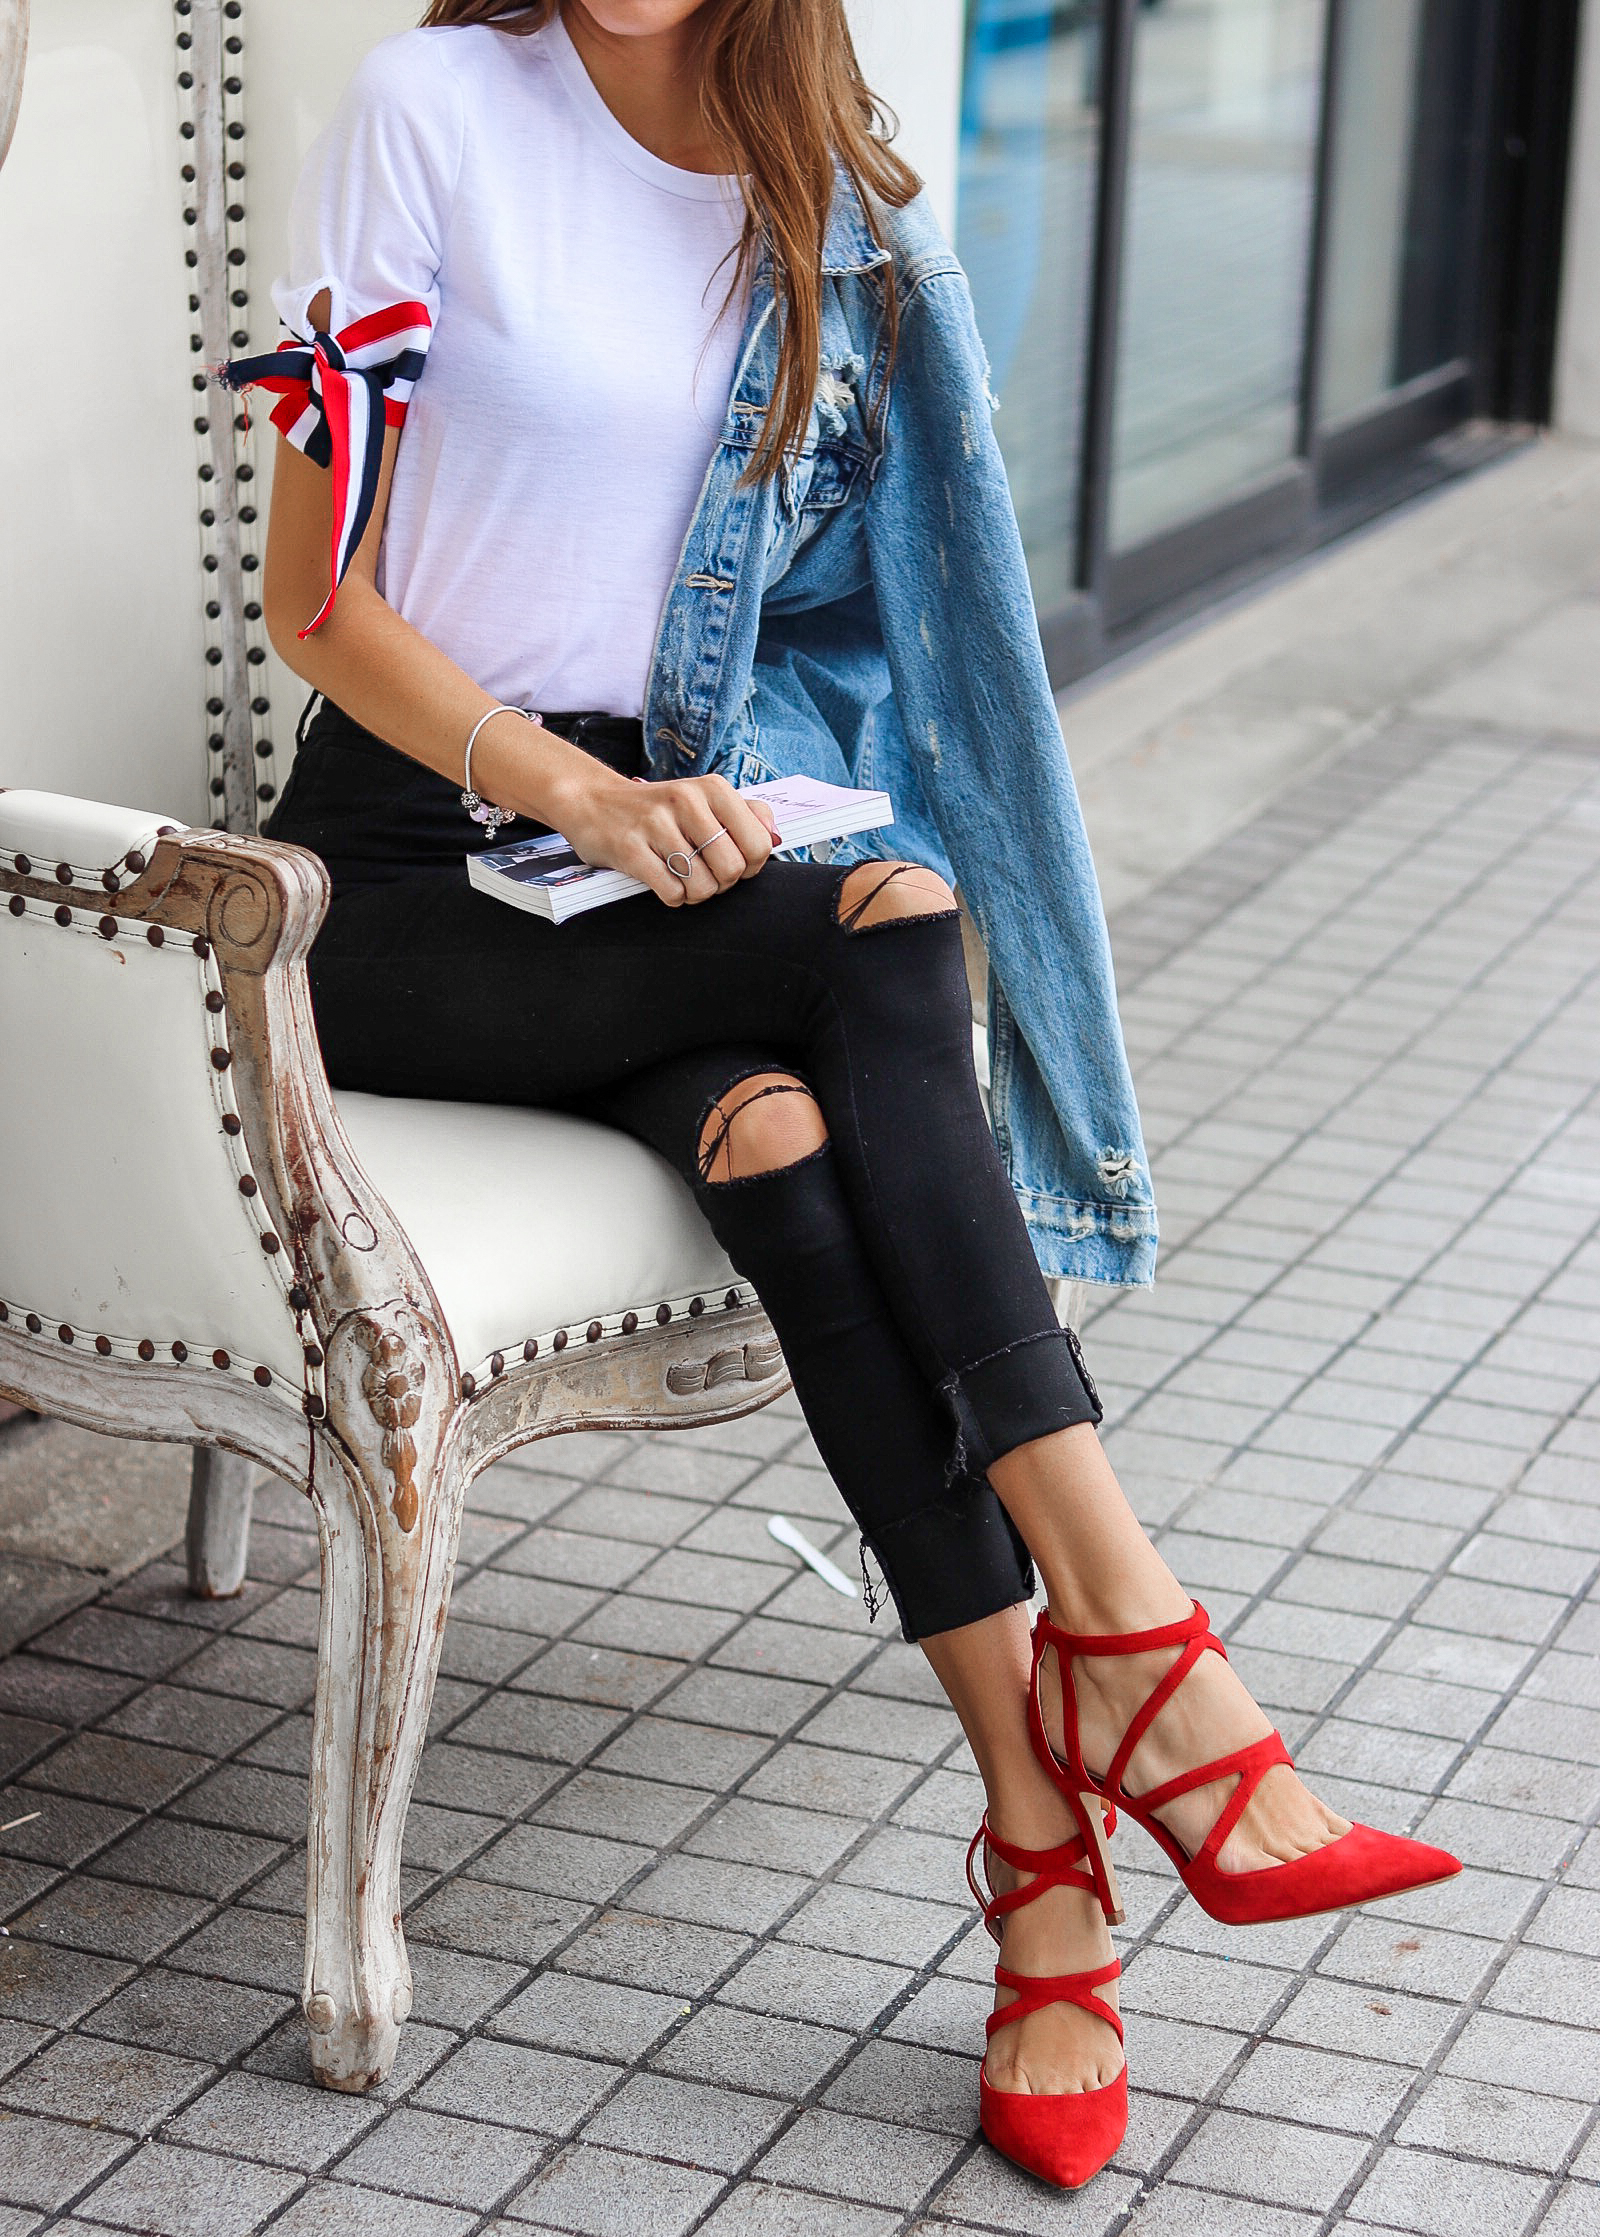 The Hungarian Brunette Outfit Inspo - OOTD self-tie bow sleeves and red pumps